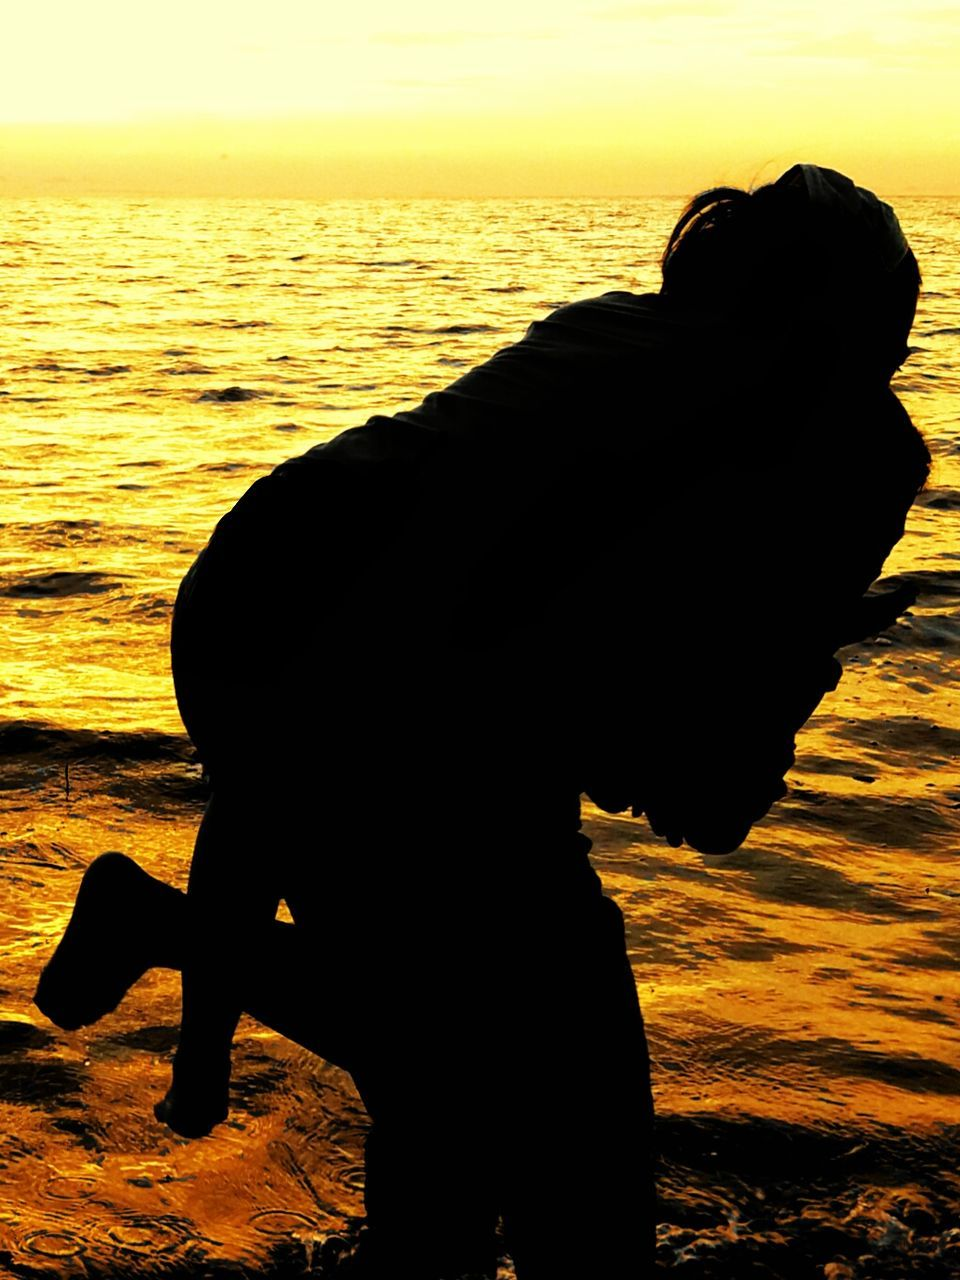 sunset, silhouette, sea, water, one person, real people, side view, nature, leisure activity, standing, beauty in nature, beach, outdoors, horizon over water, full length, lifestyles, scenics, men, sky, close-up, day, people